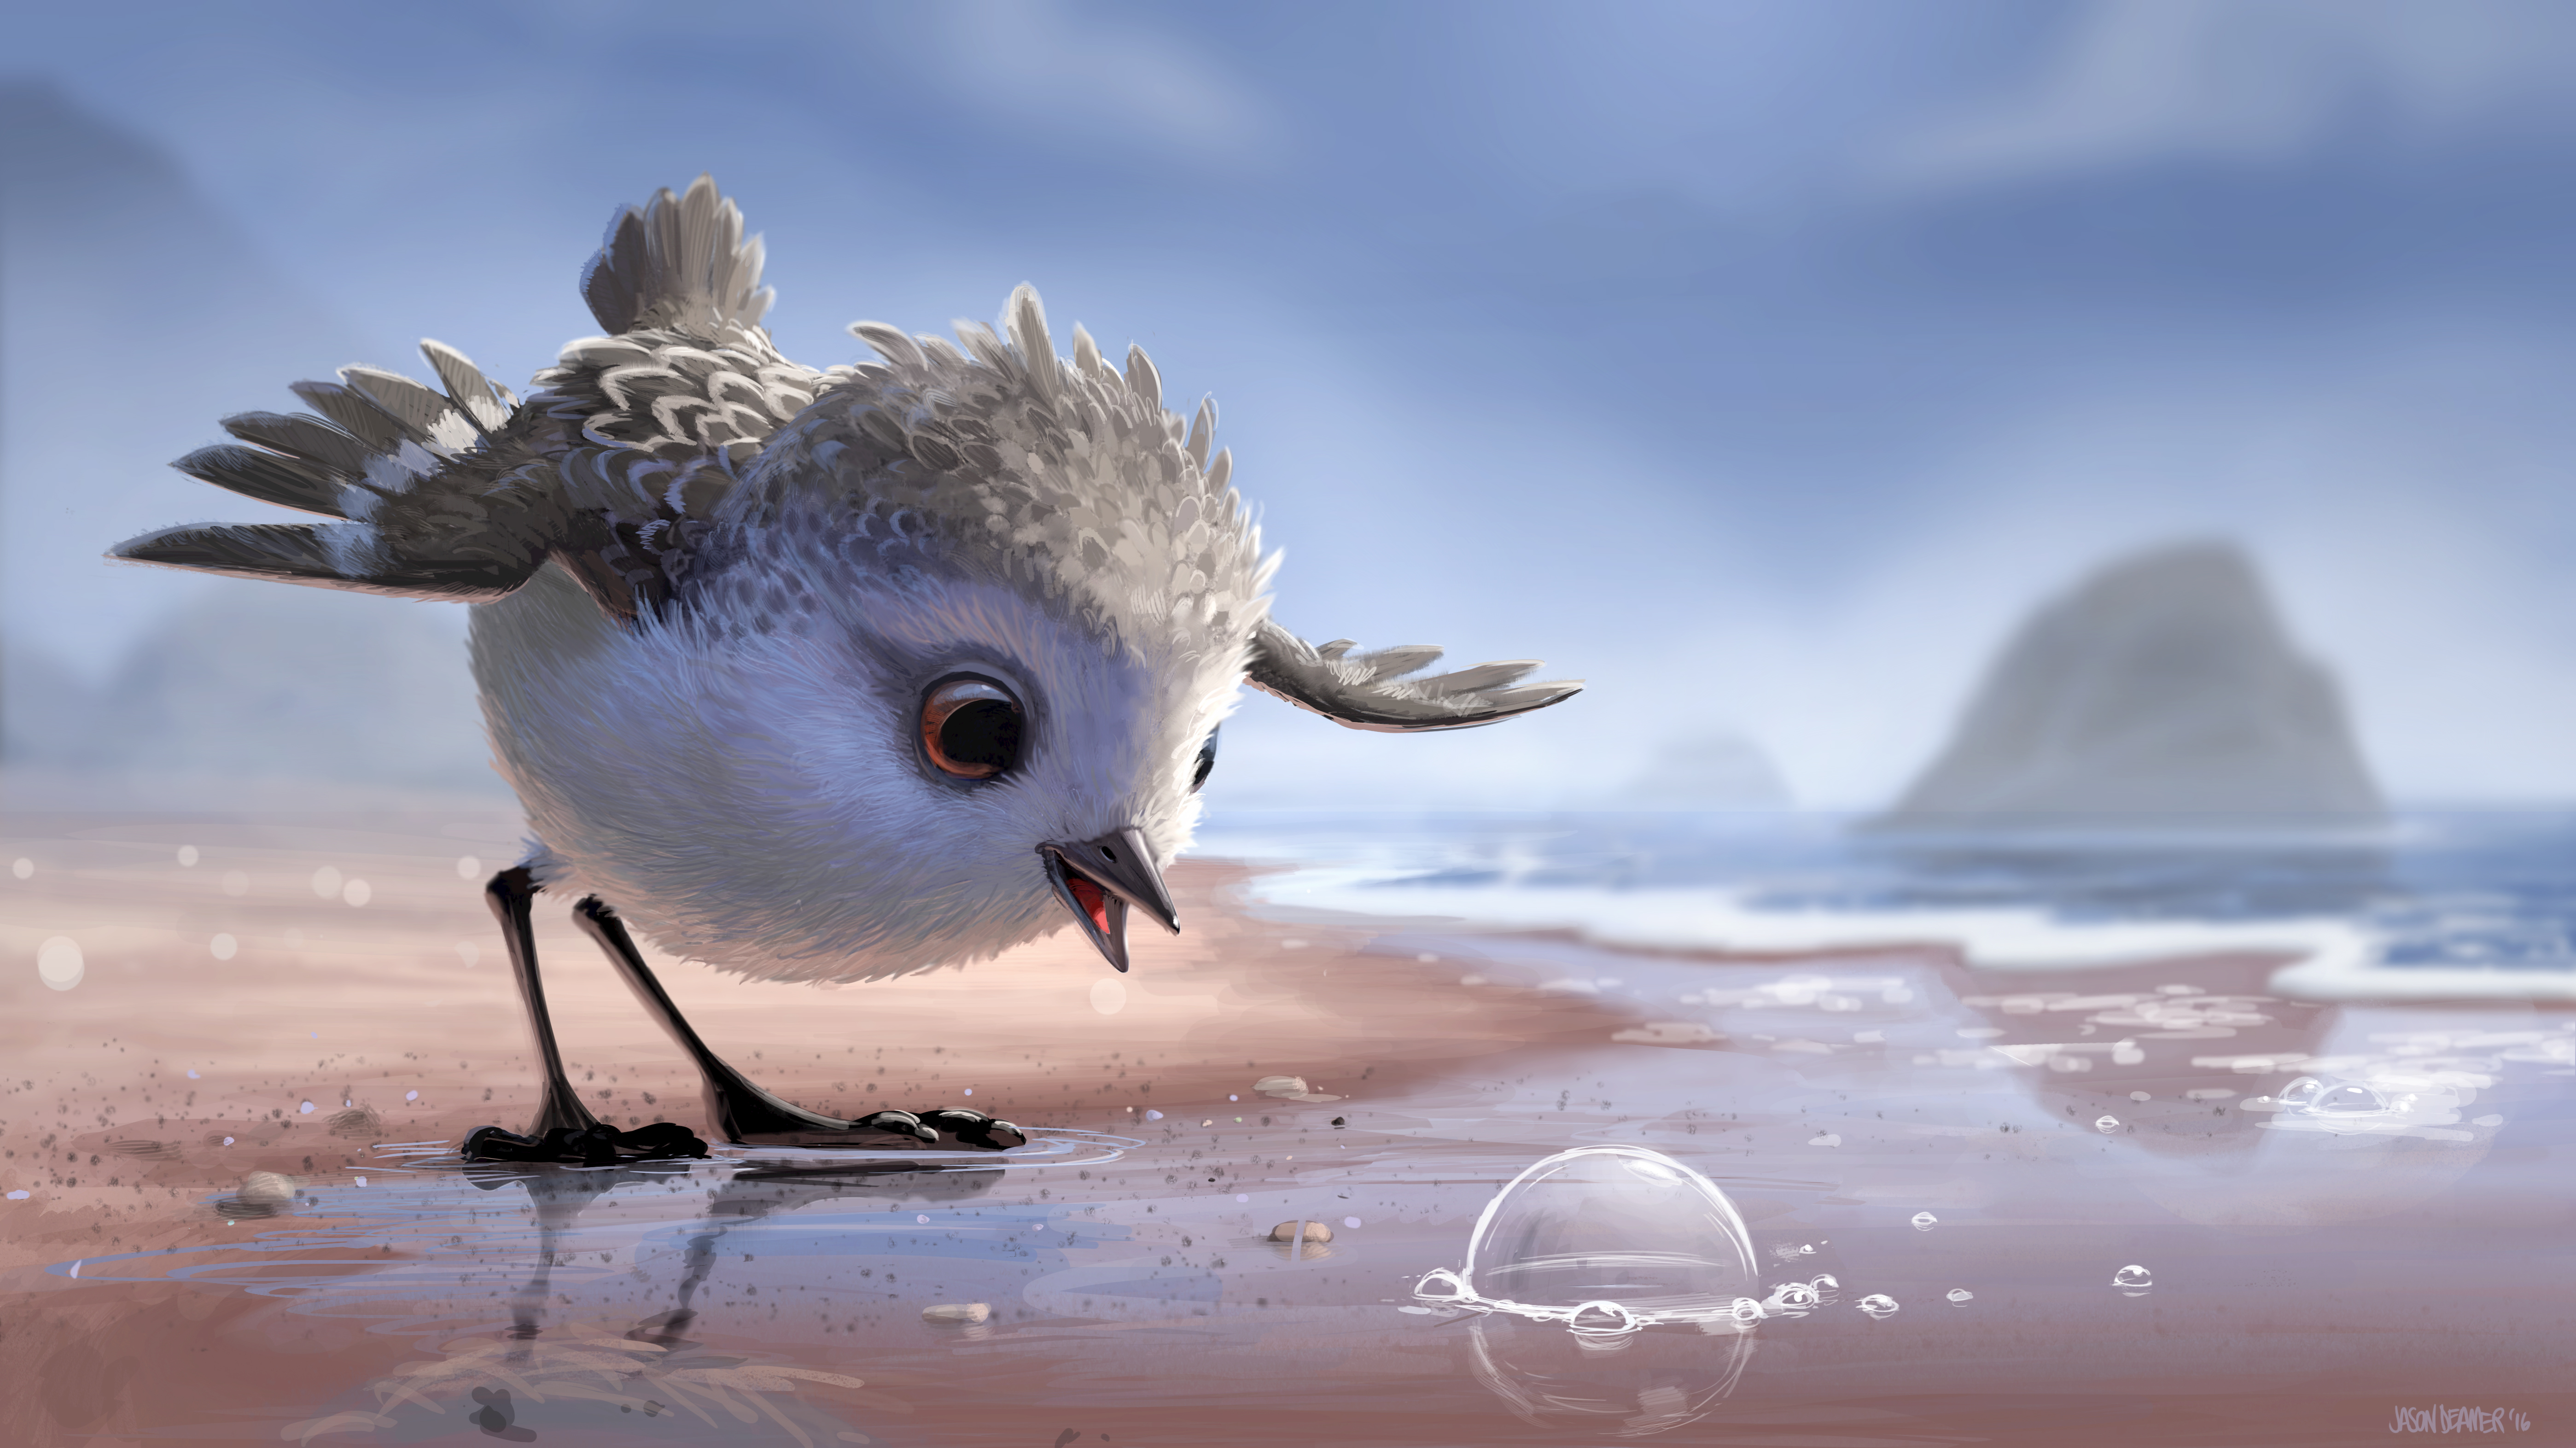 Pixar is releasing all these movies soon, and we can't wait!